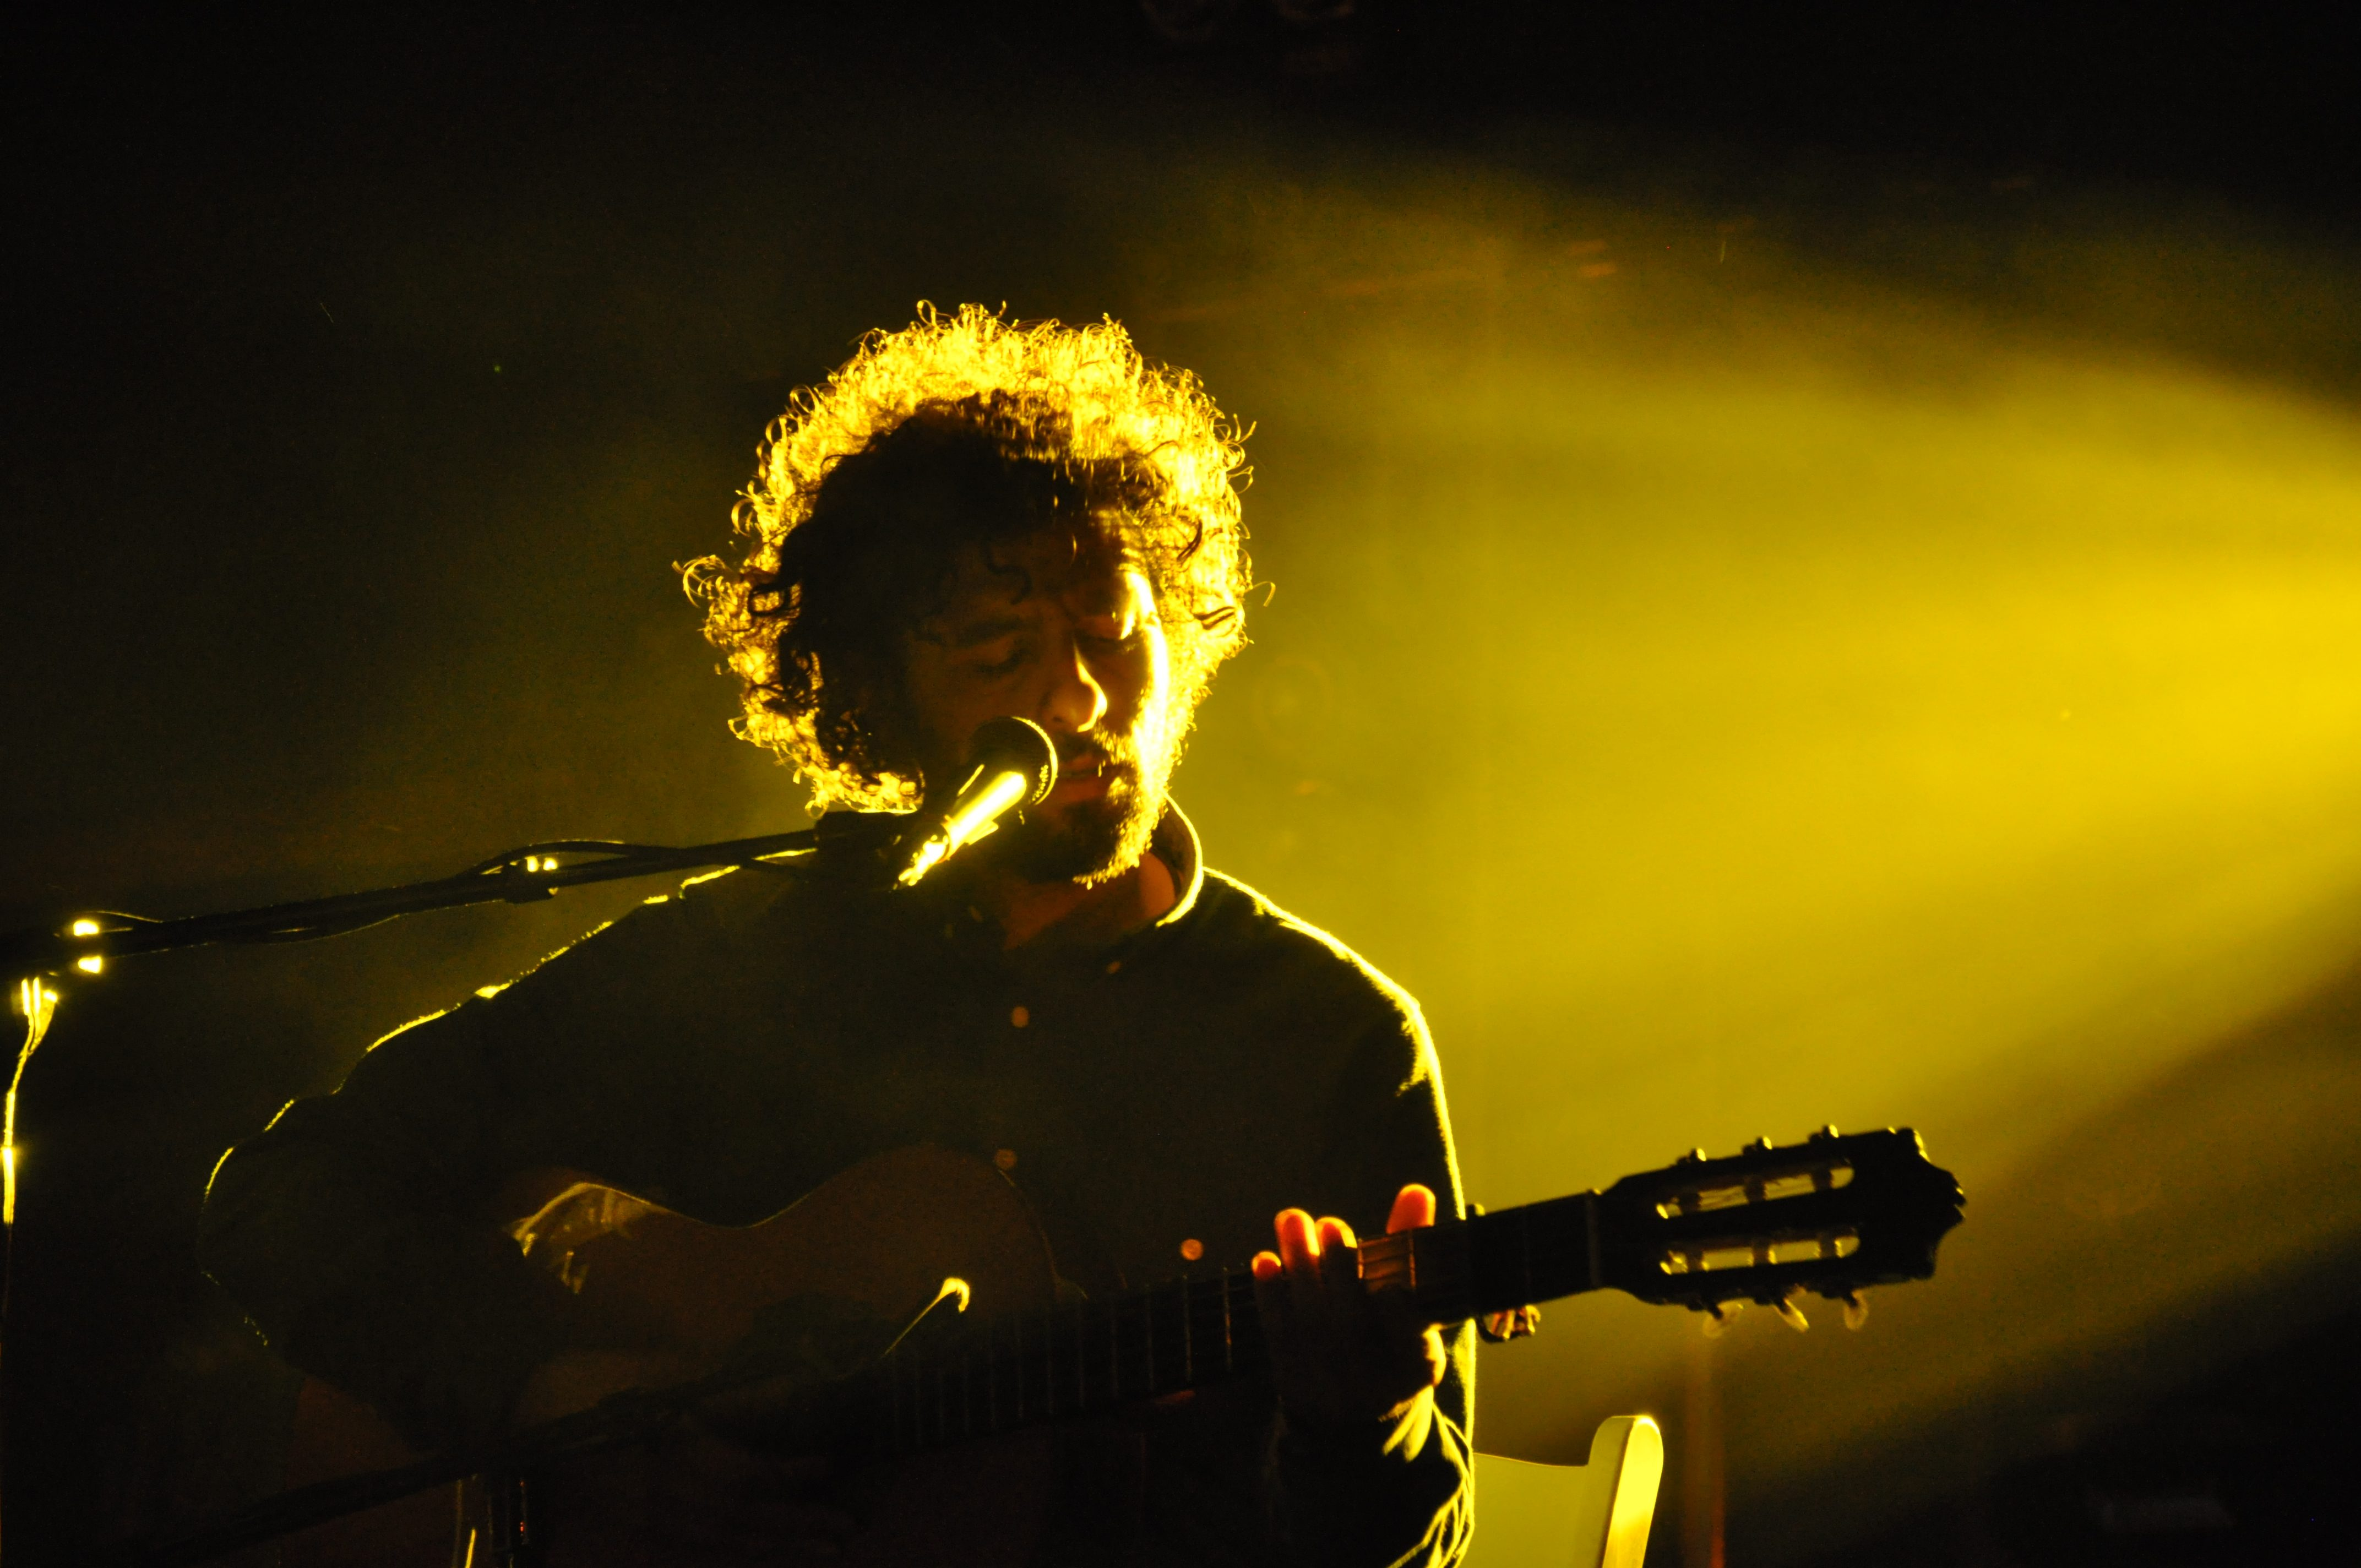 """José González Shares Video for First New Song in Over Five Years """"El Invento"""""""